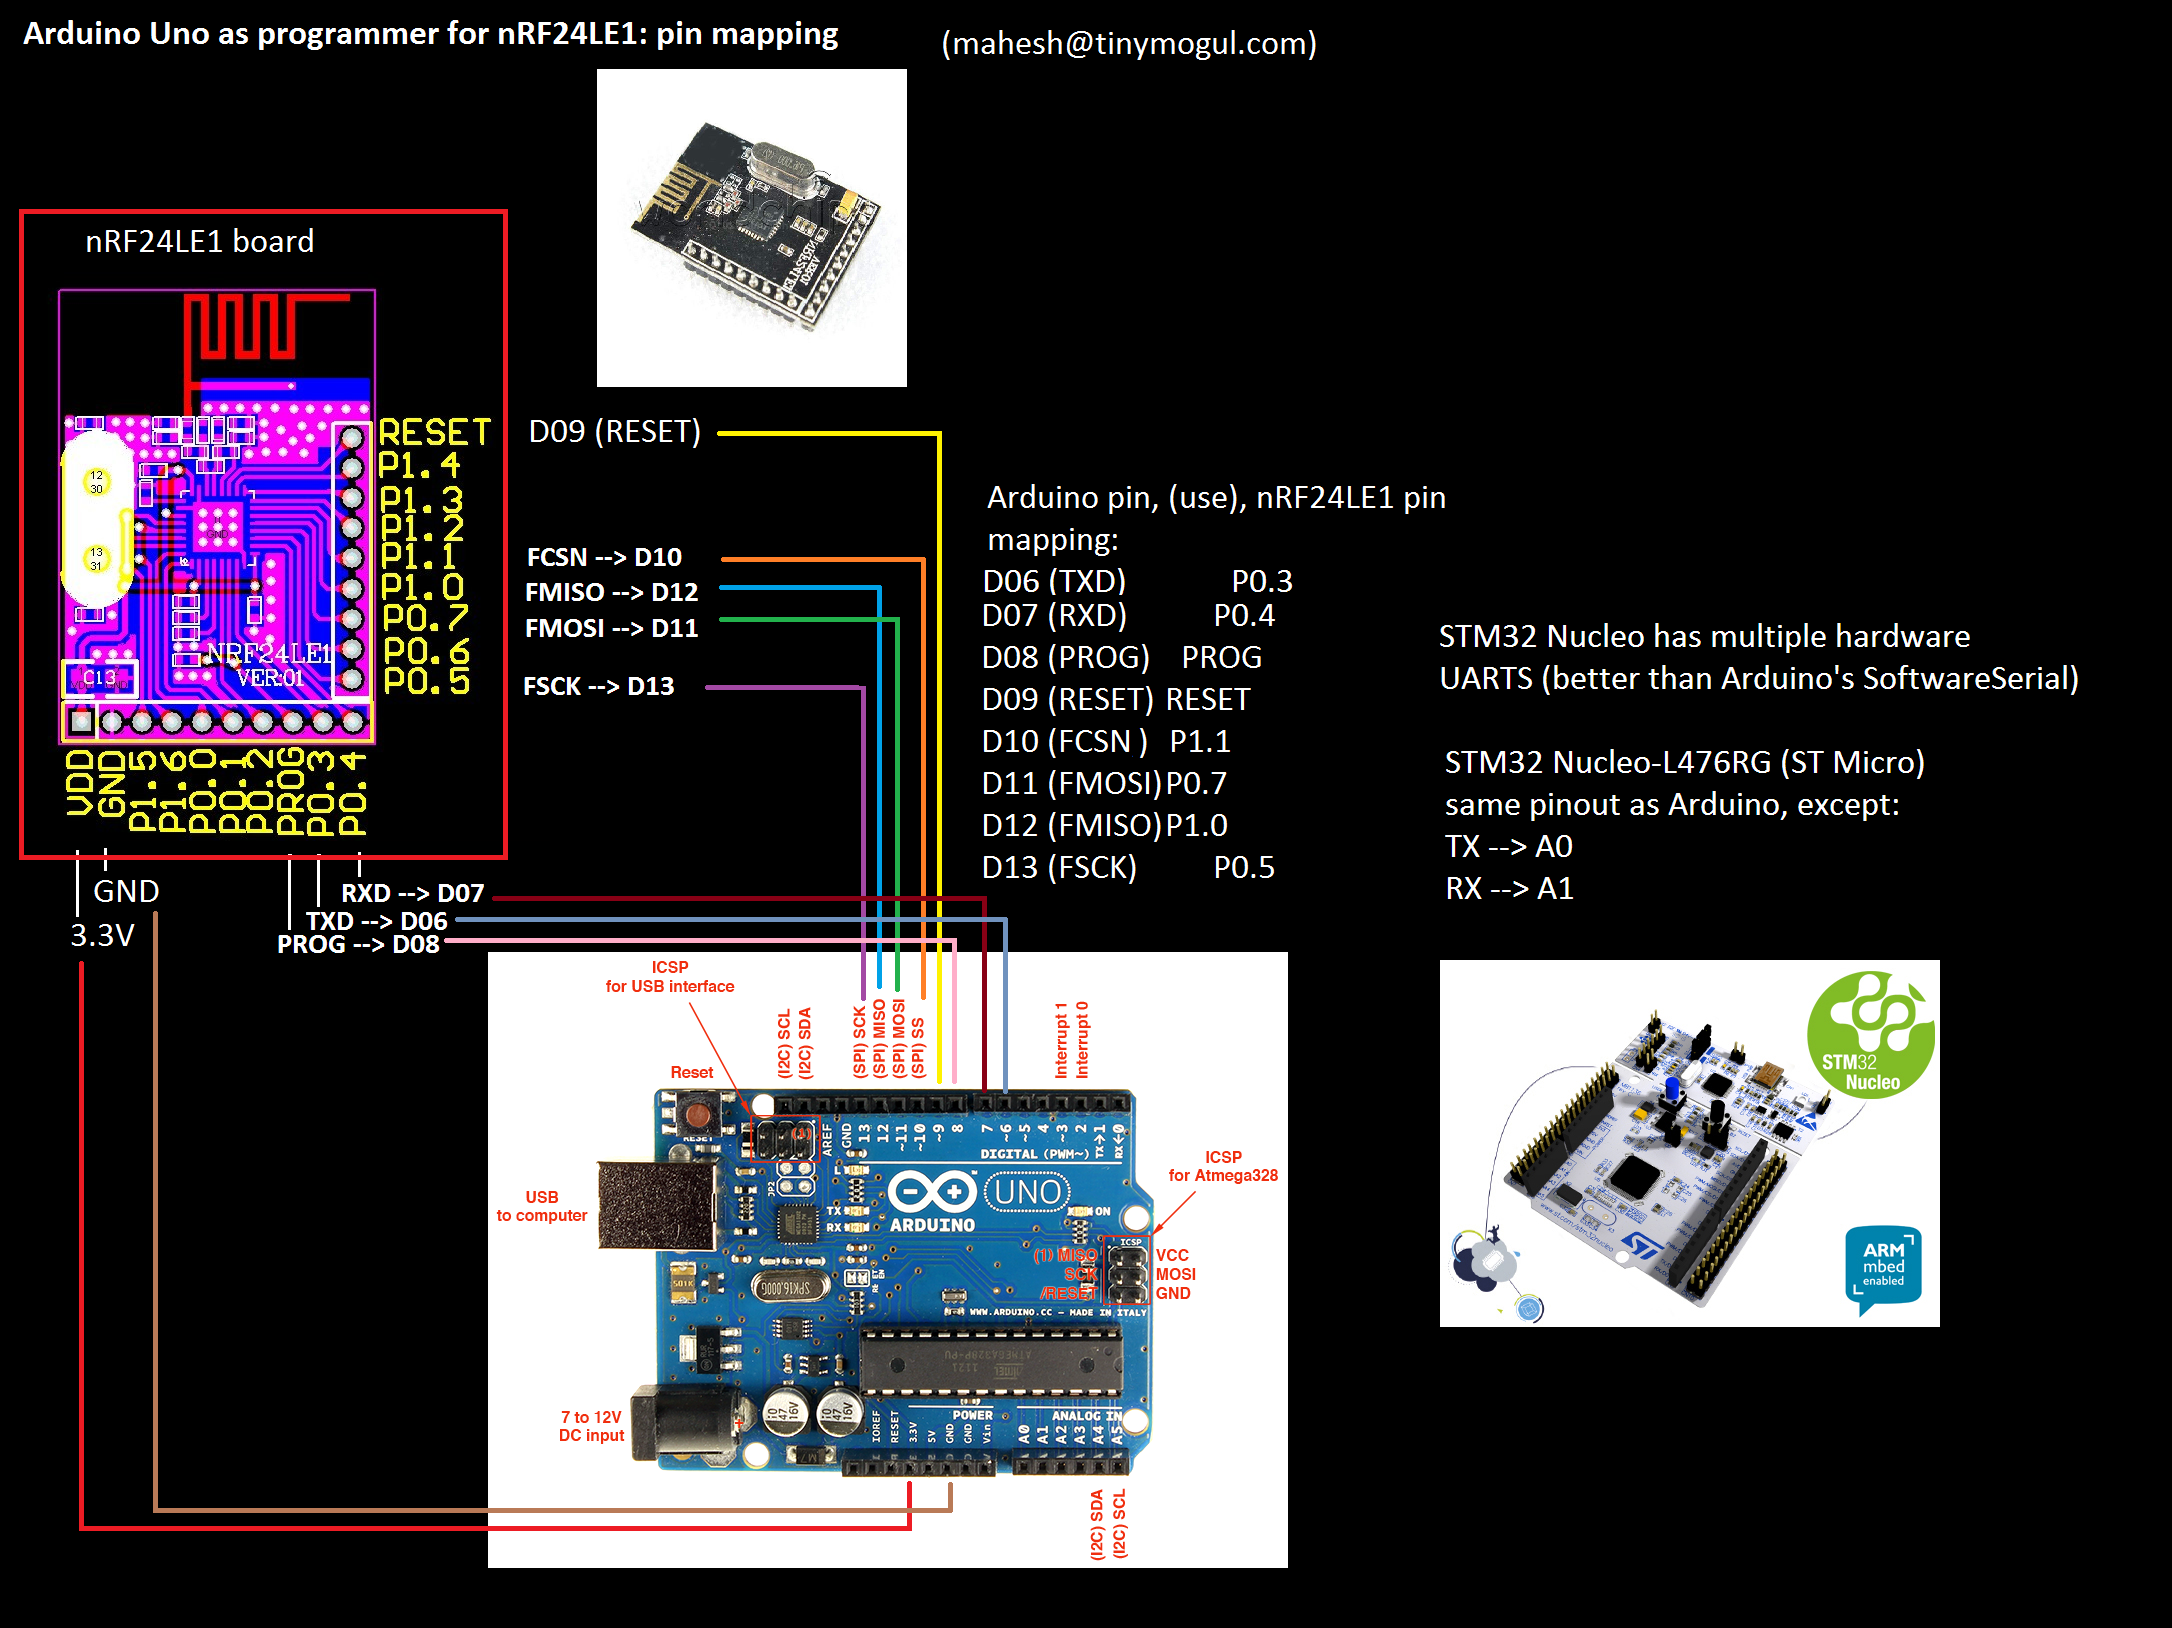 Car Alarm Secure Remote With Nrf24le1 I O Module Wiring Diagram Arduinos Are Cheaper Than Raspis And Can Also Be Used As Programmers For The See Https Project 5794 Instructions